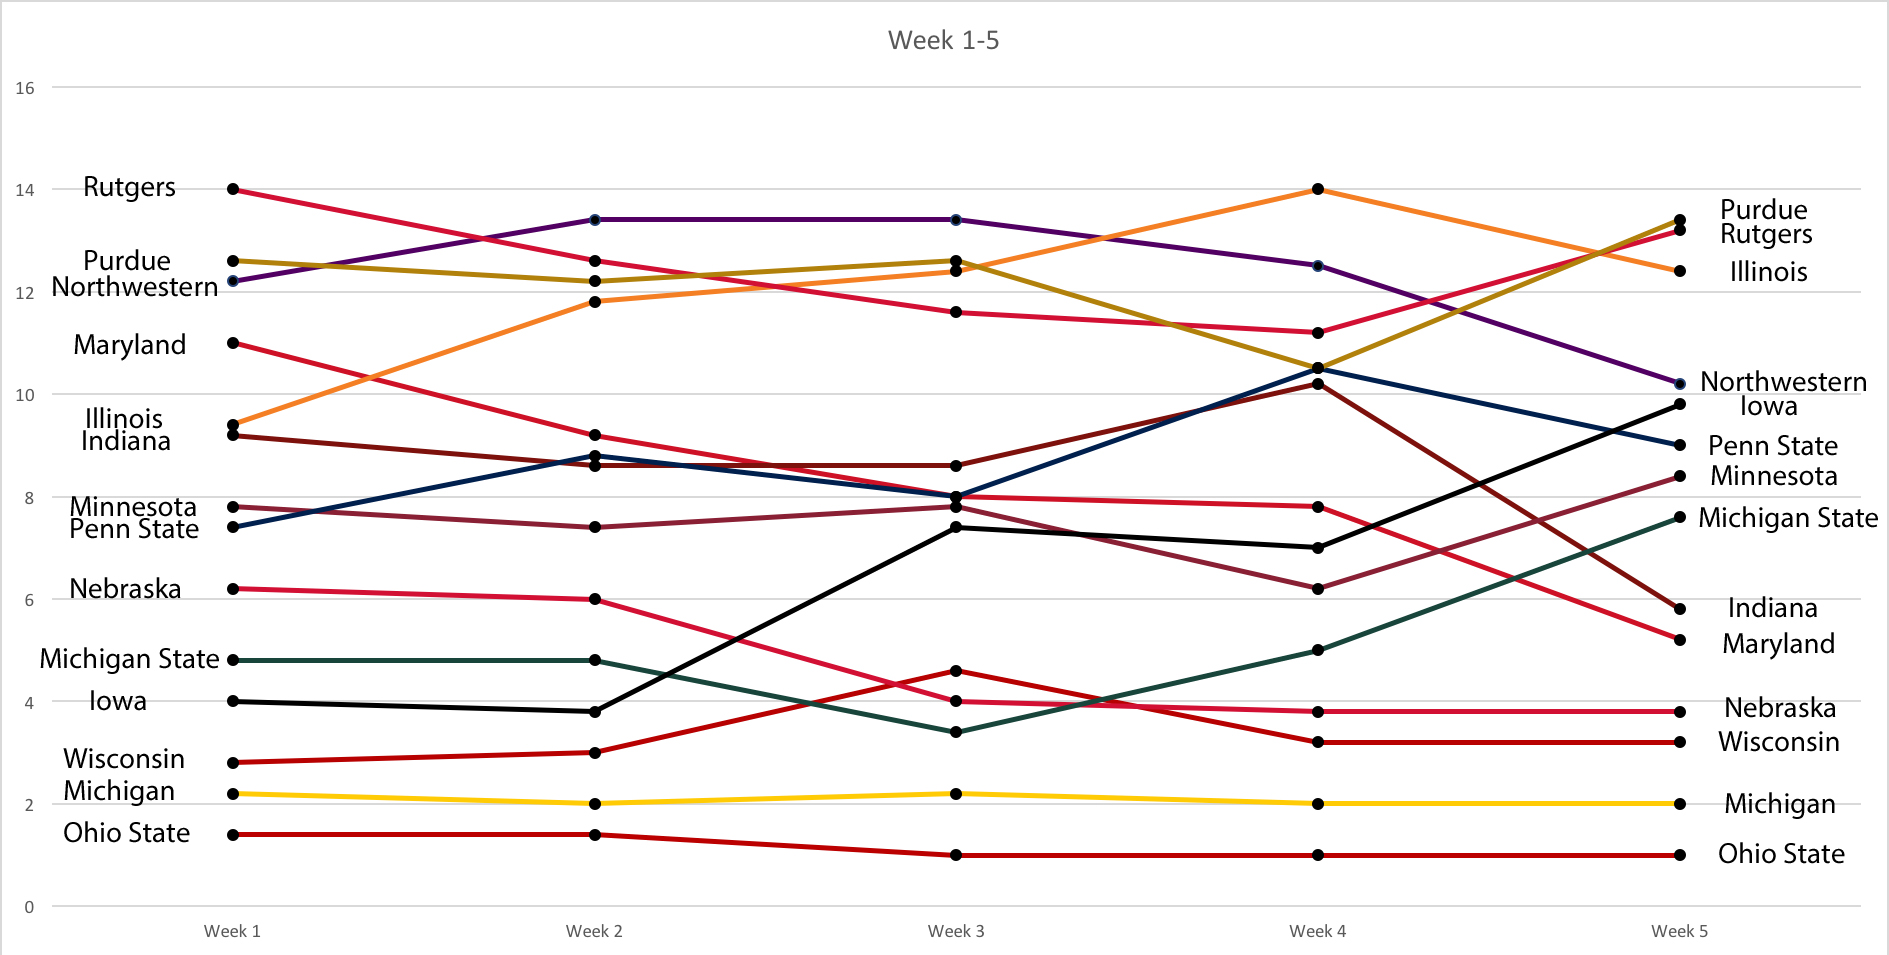 week-1-5-power-rankings